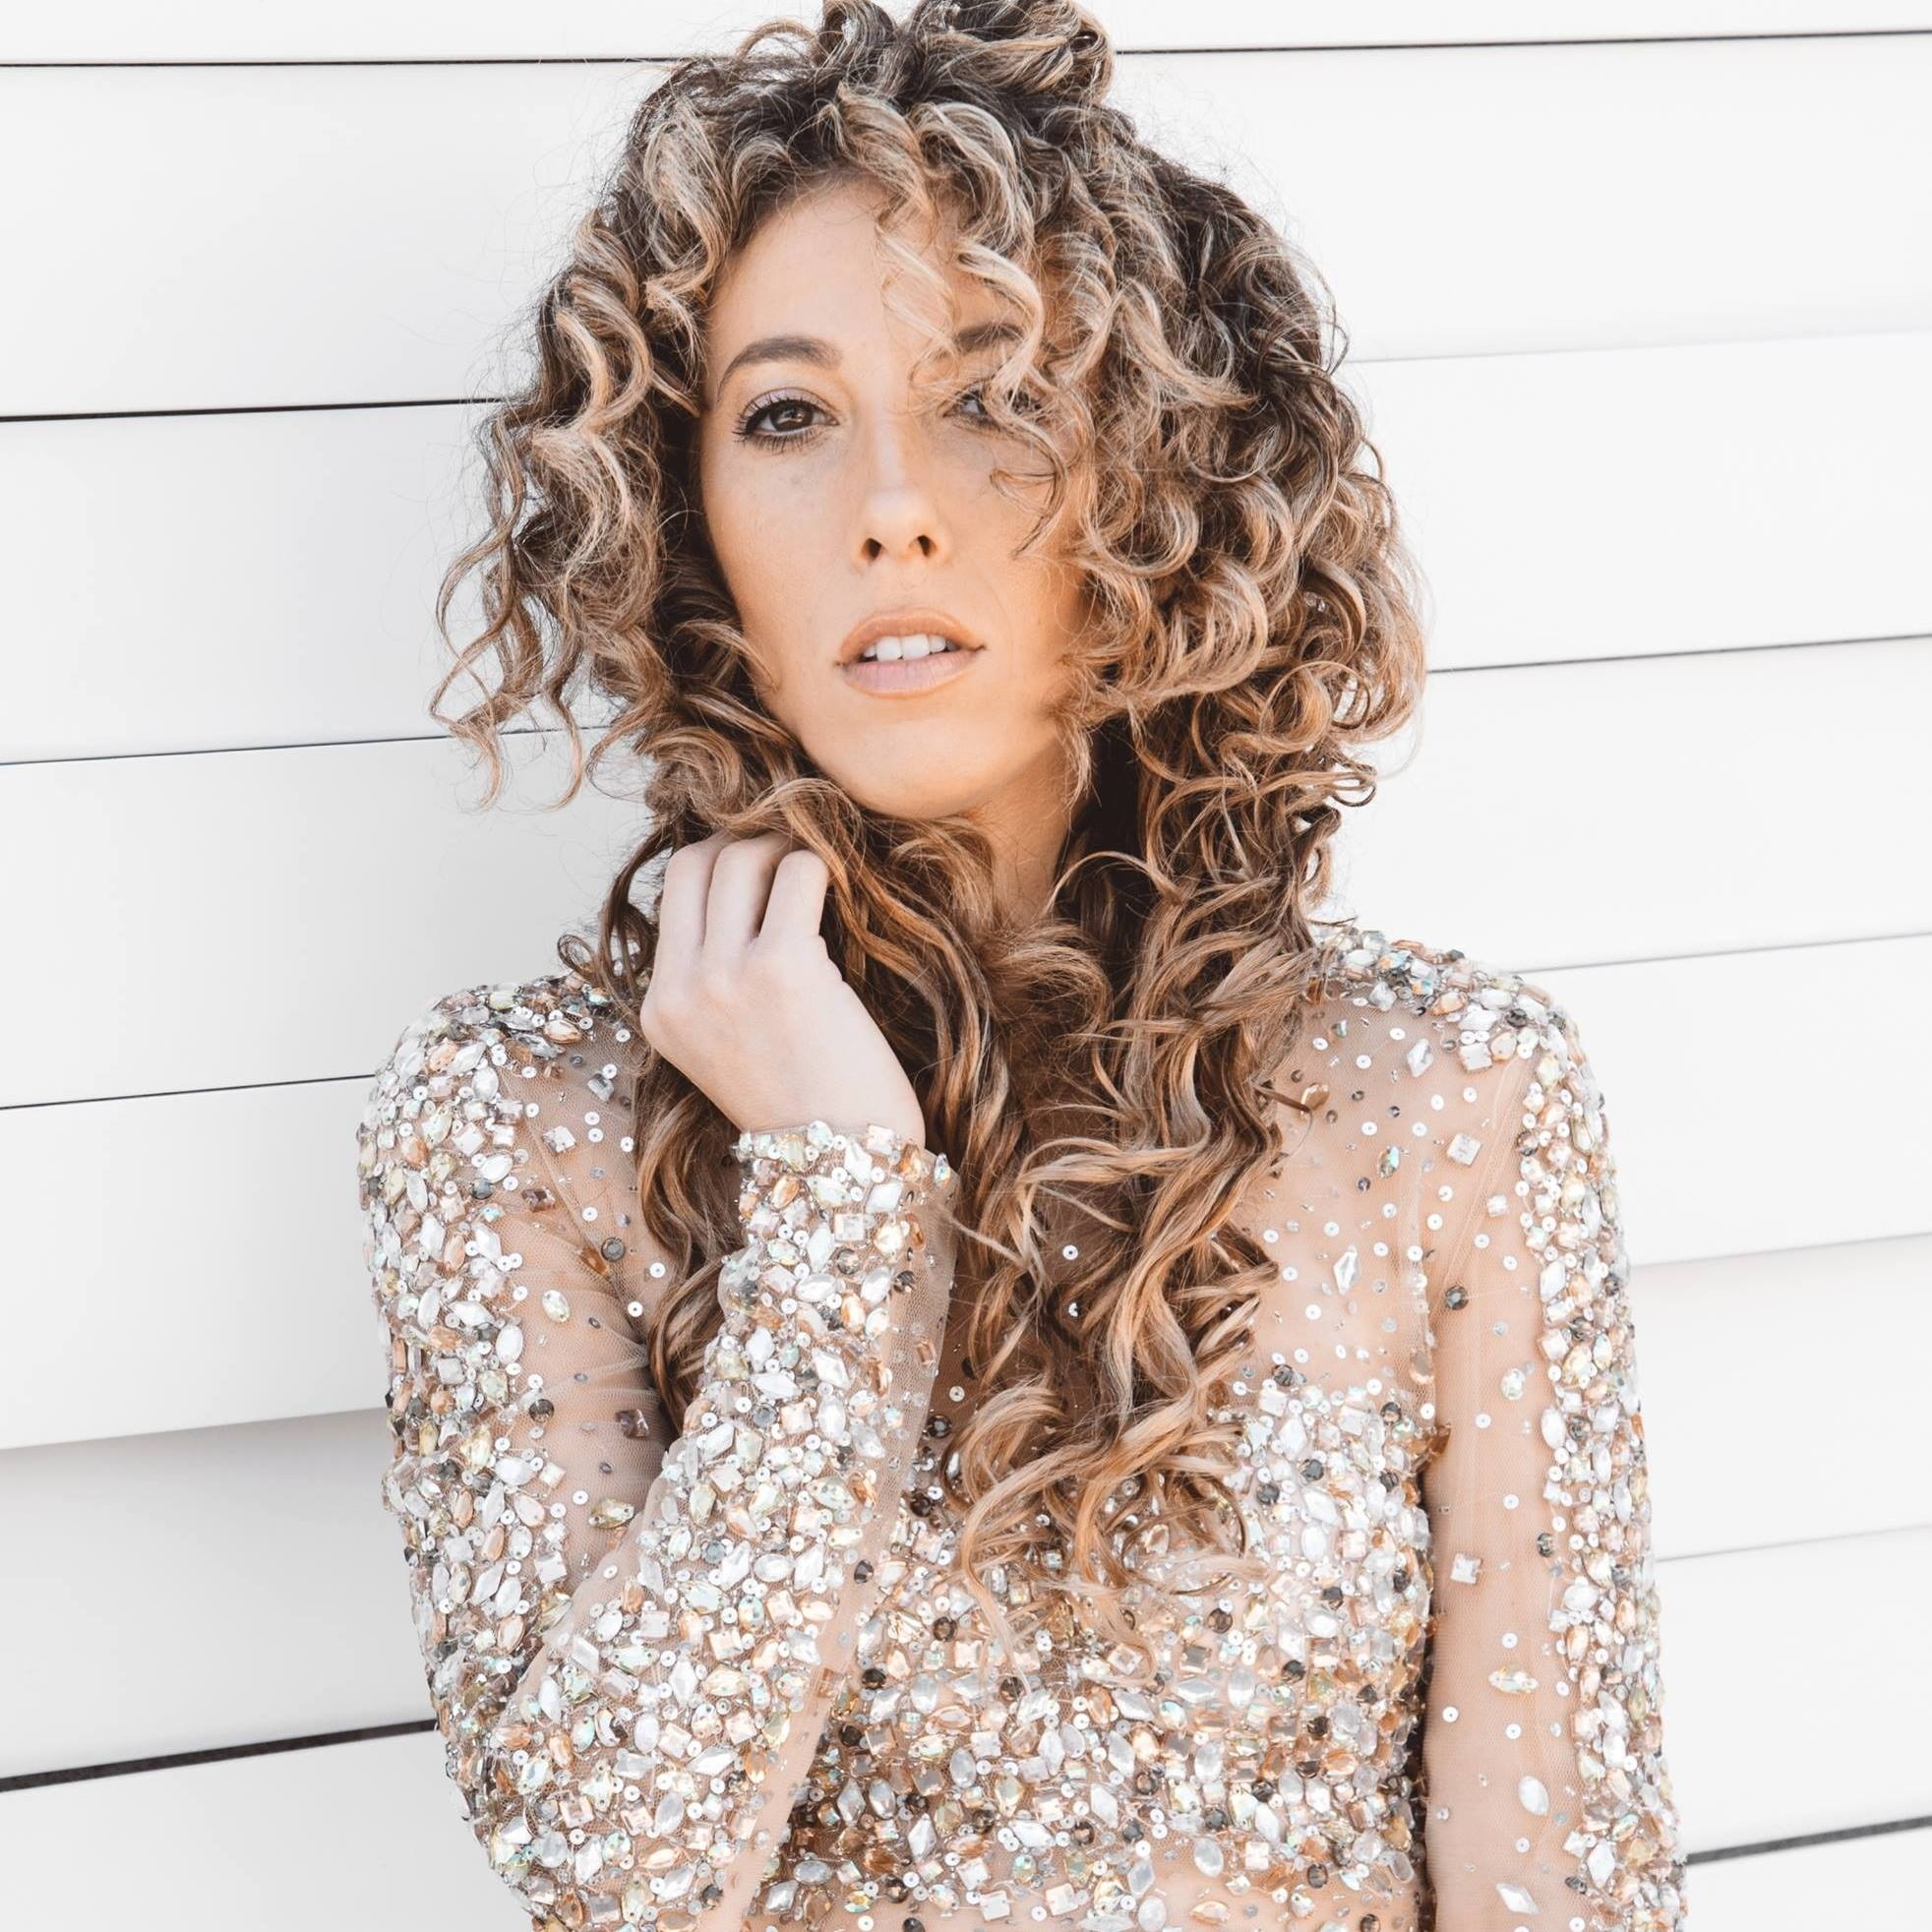 Brooke Forman - Brooke Forman is an LA based singer/songwriter originating from New York City. Her collaboration with Nicky Romero on their hit single